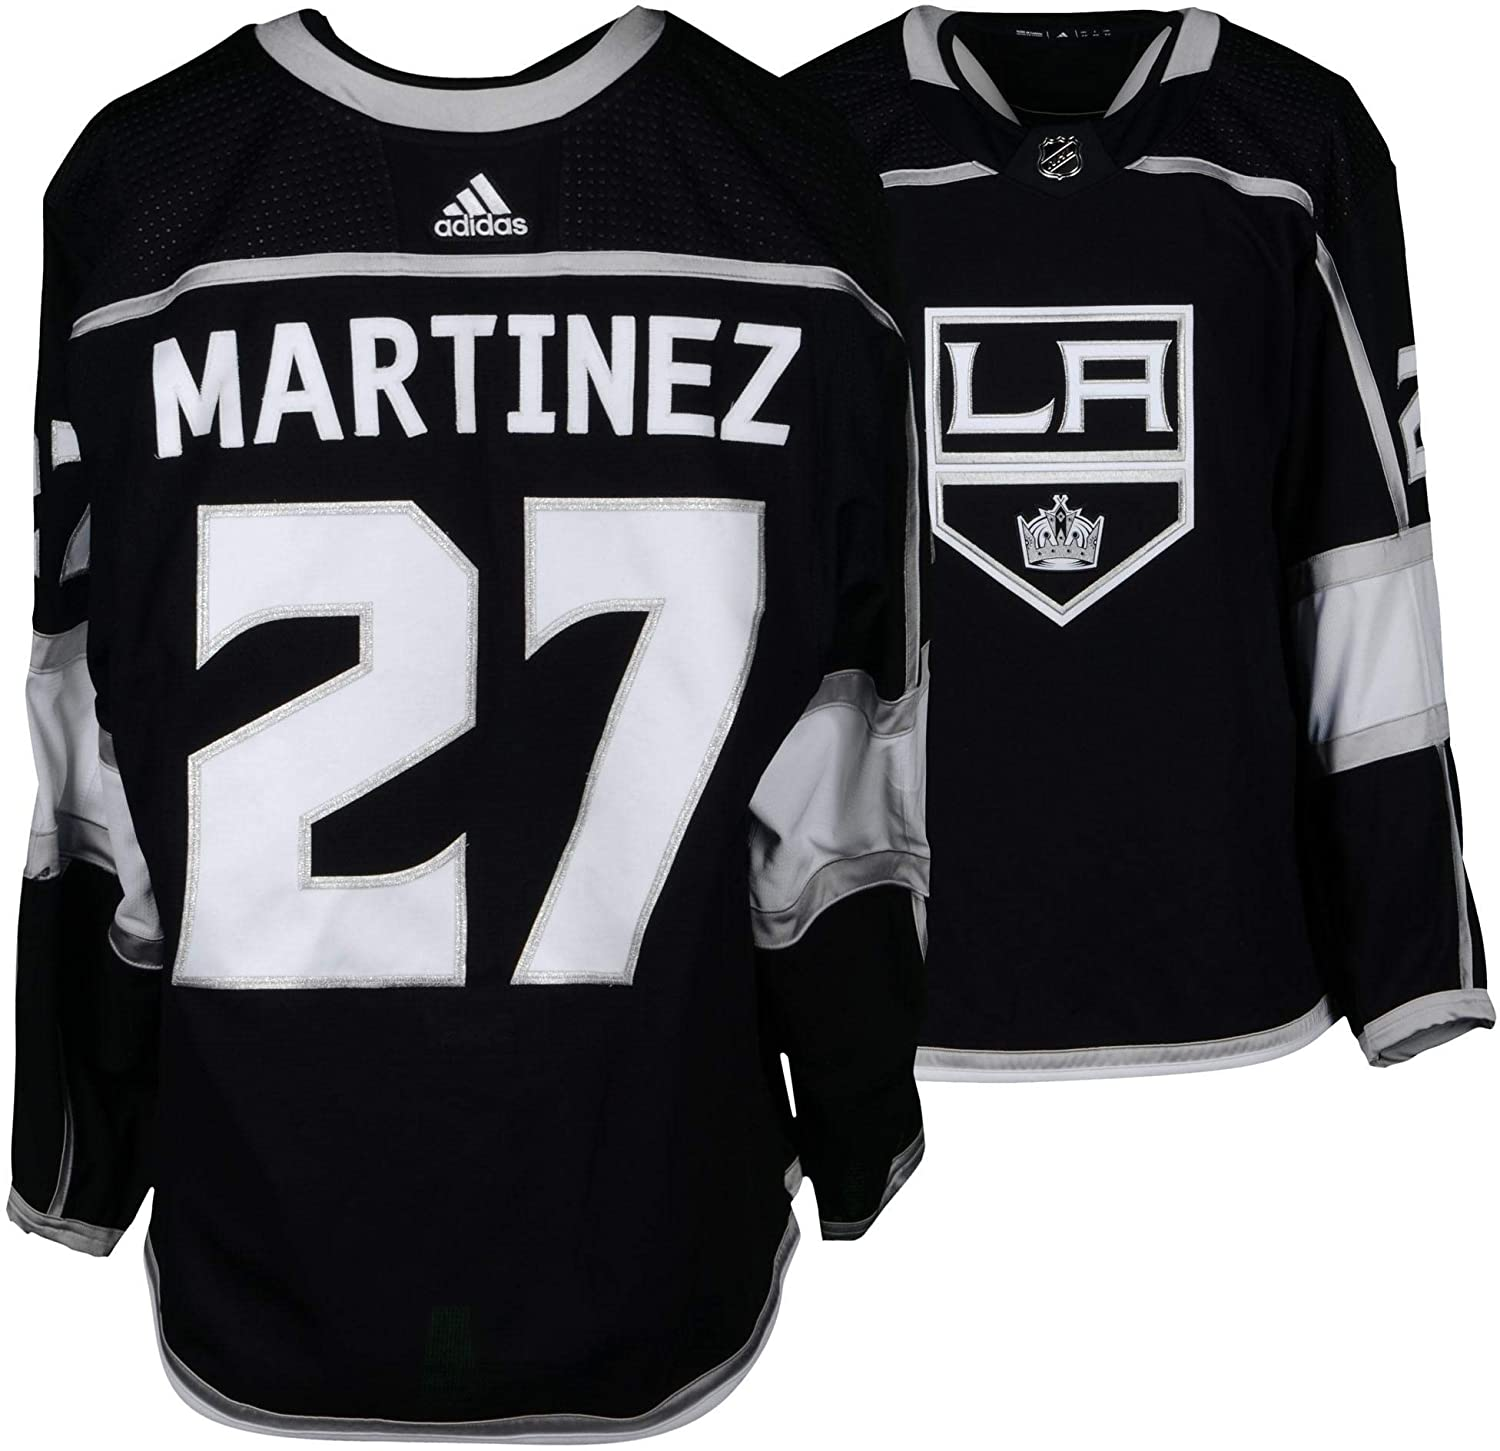 purchase cheap 9bfca 58c2e Alec Martinez Los Angeles Kings Game-Used #27 Black Jersey ...